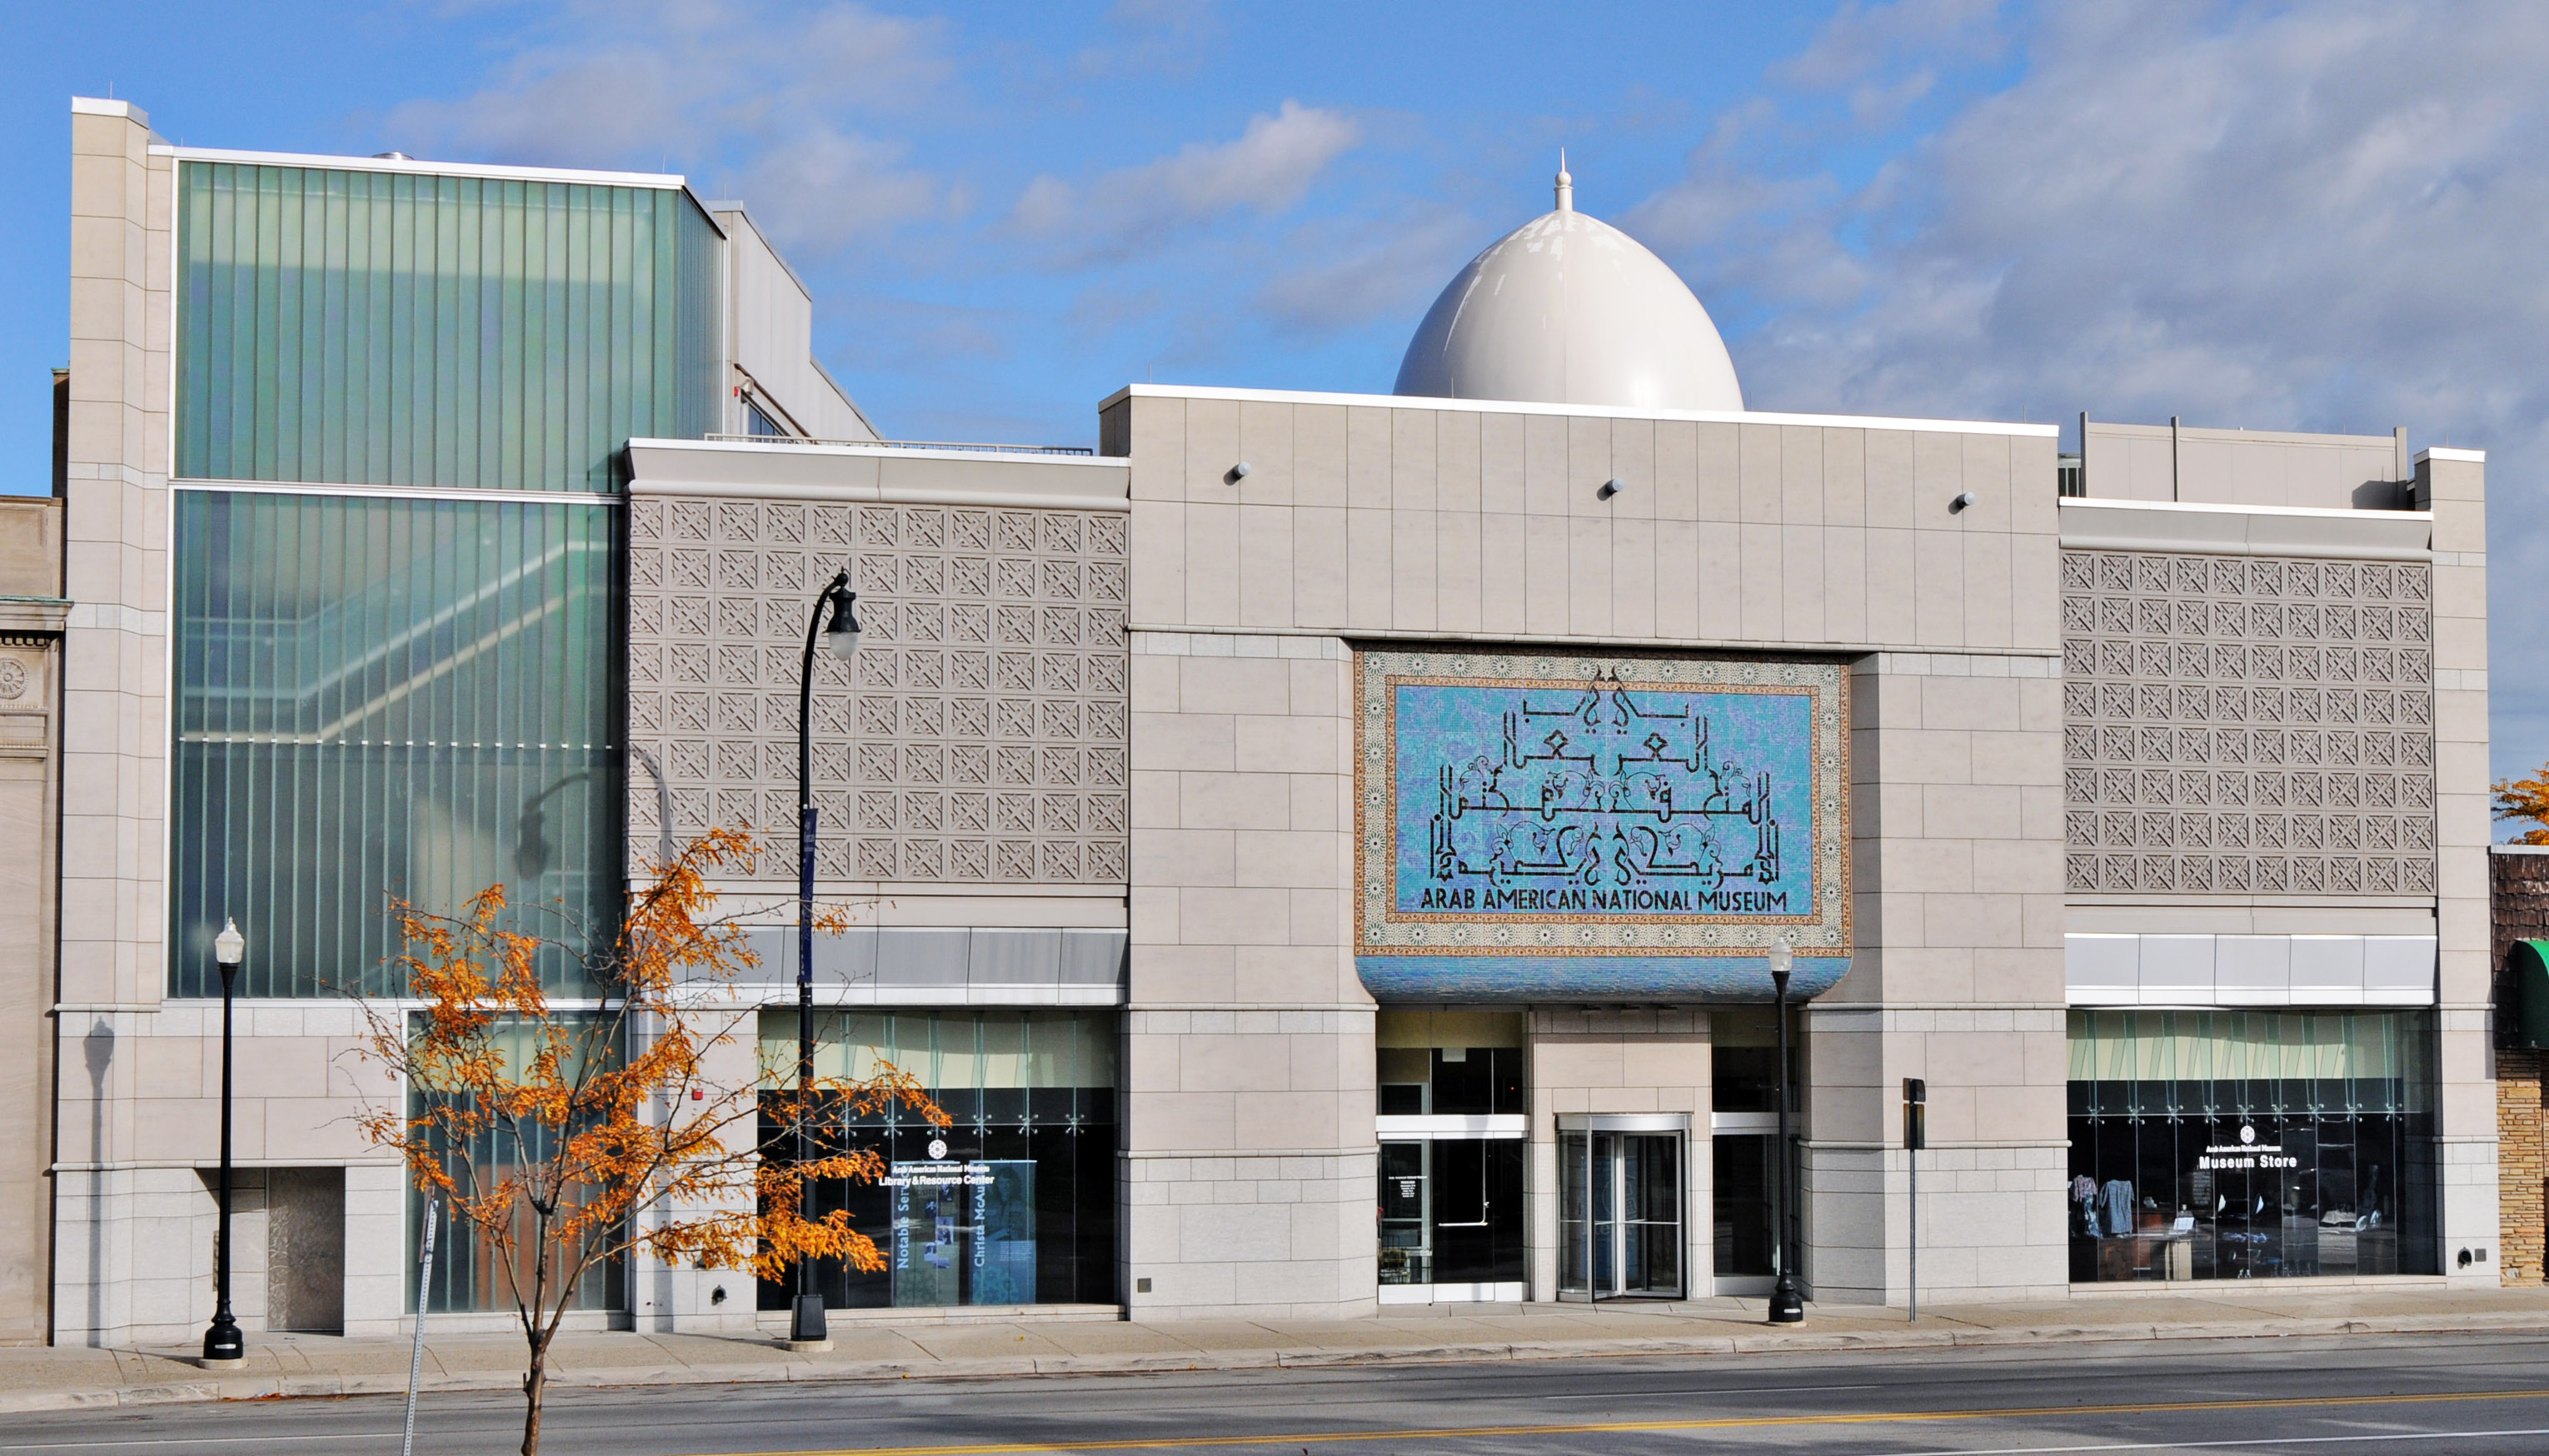 The Arab American National Museum opened in 2005.